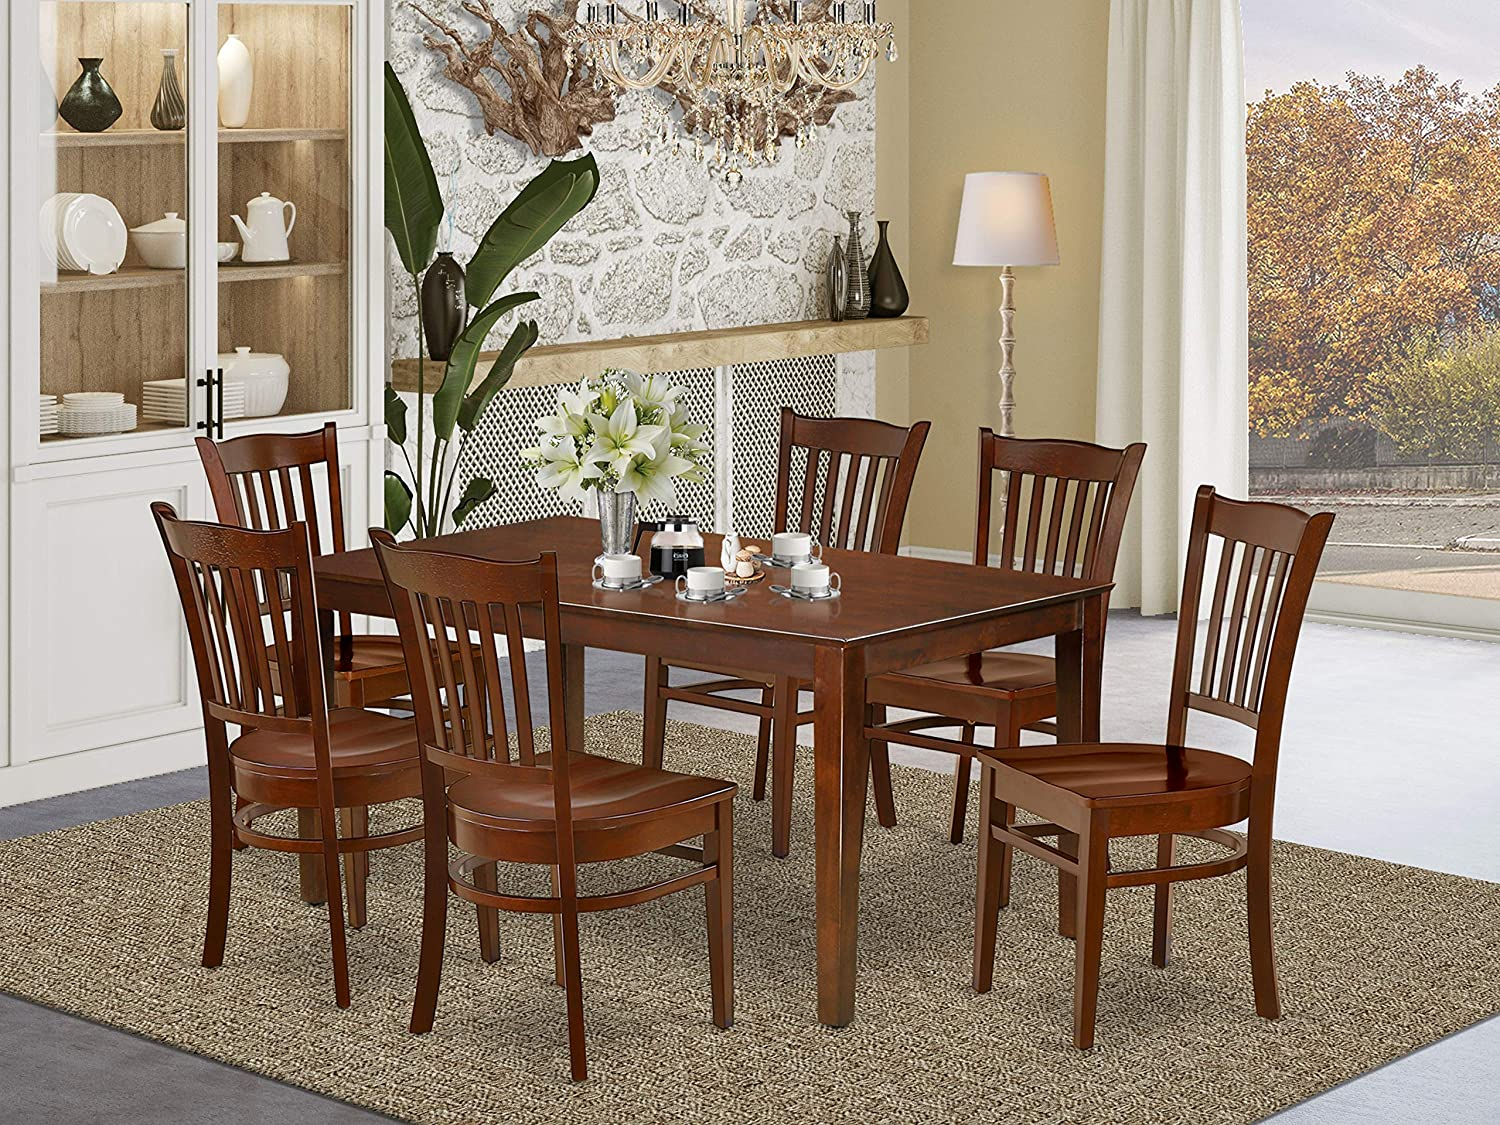 East West Furniture Wood Dining Table Set 9 Pc   Wooden Dining Table Chairs  Seat   Mahogany Finish Wood Dining Table and Structure